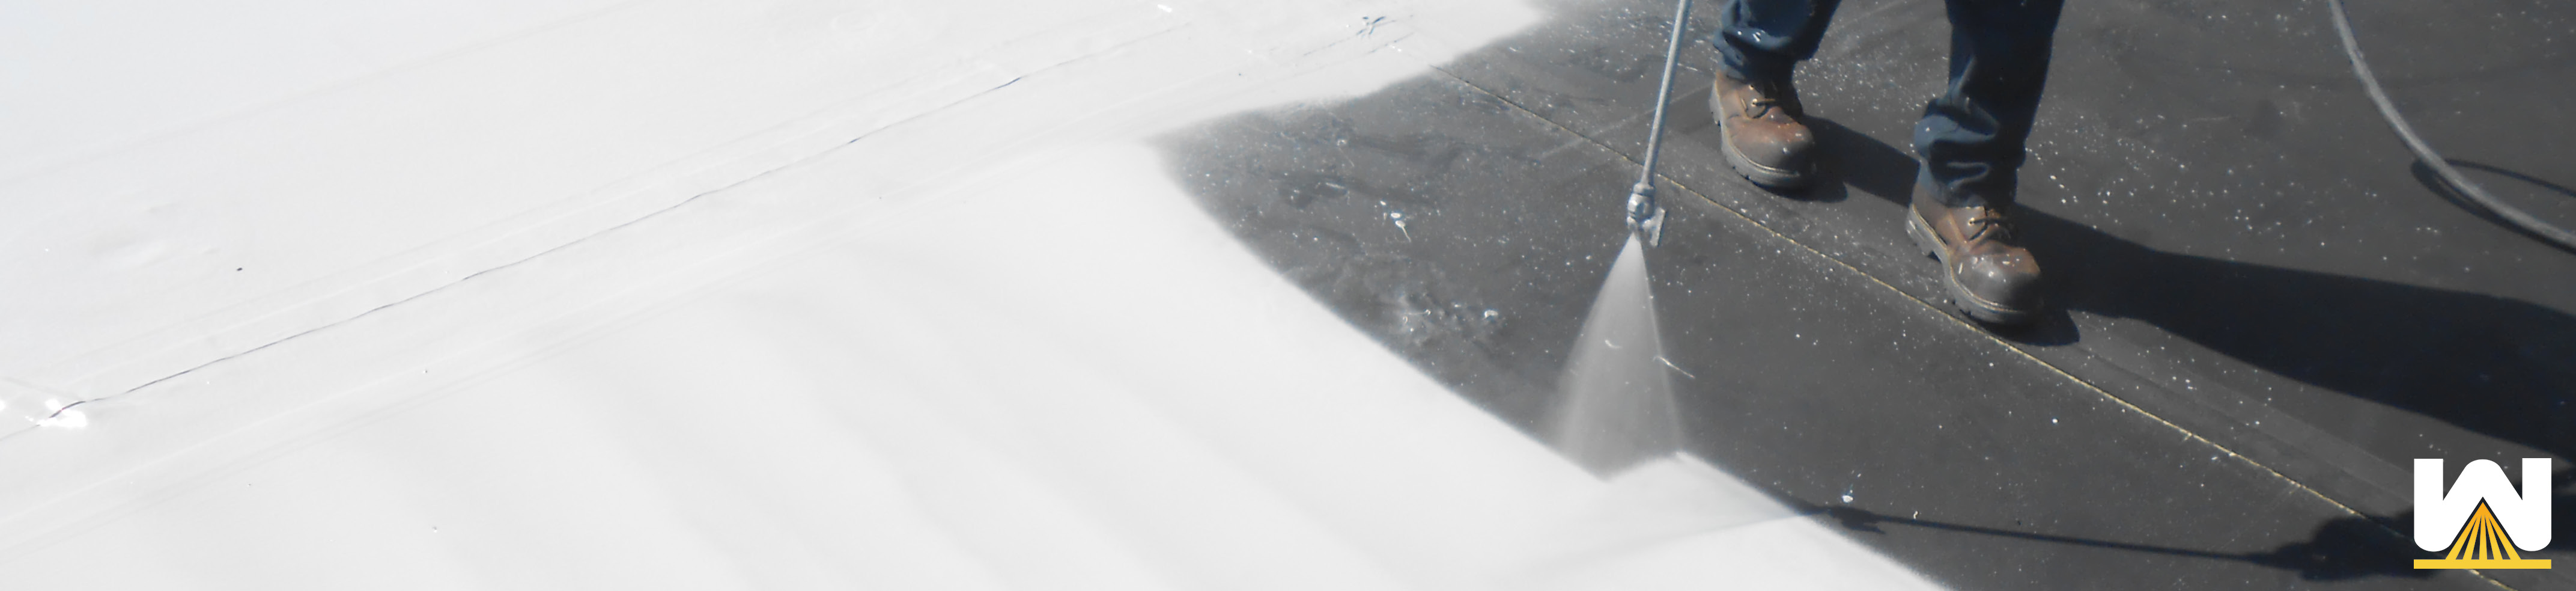 Spray On Roof Coating Restoration What Is It And Do You